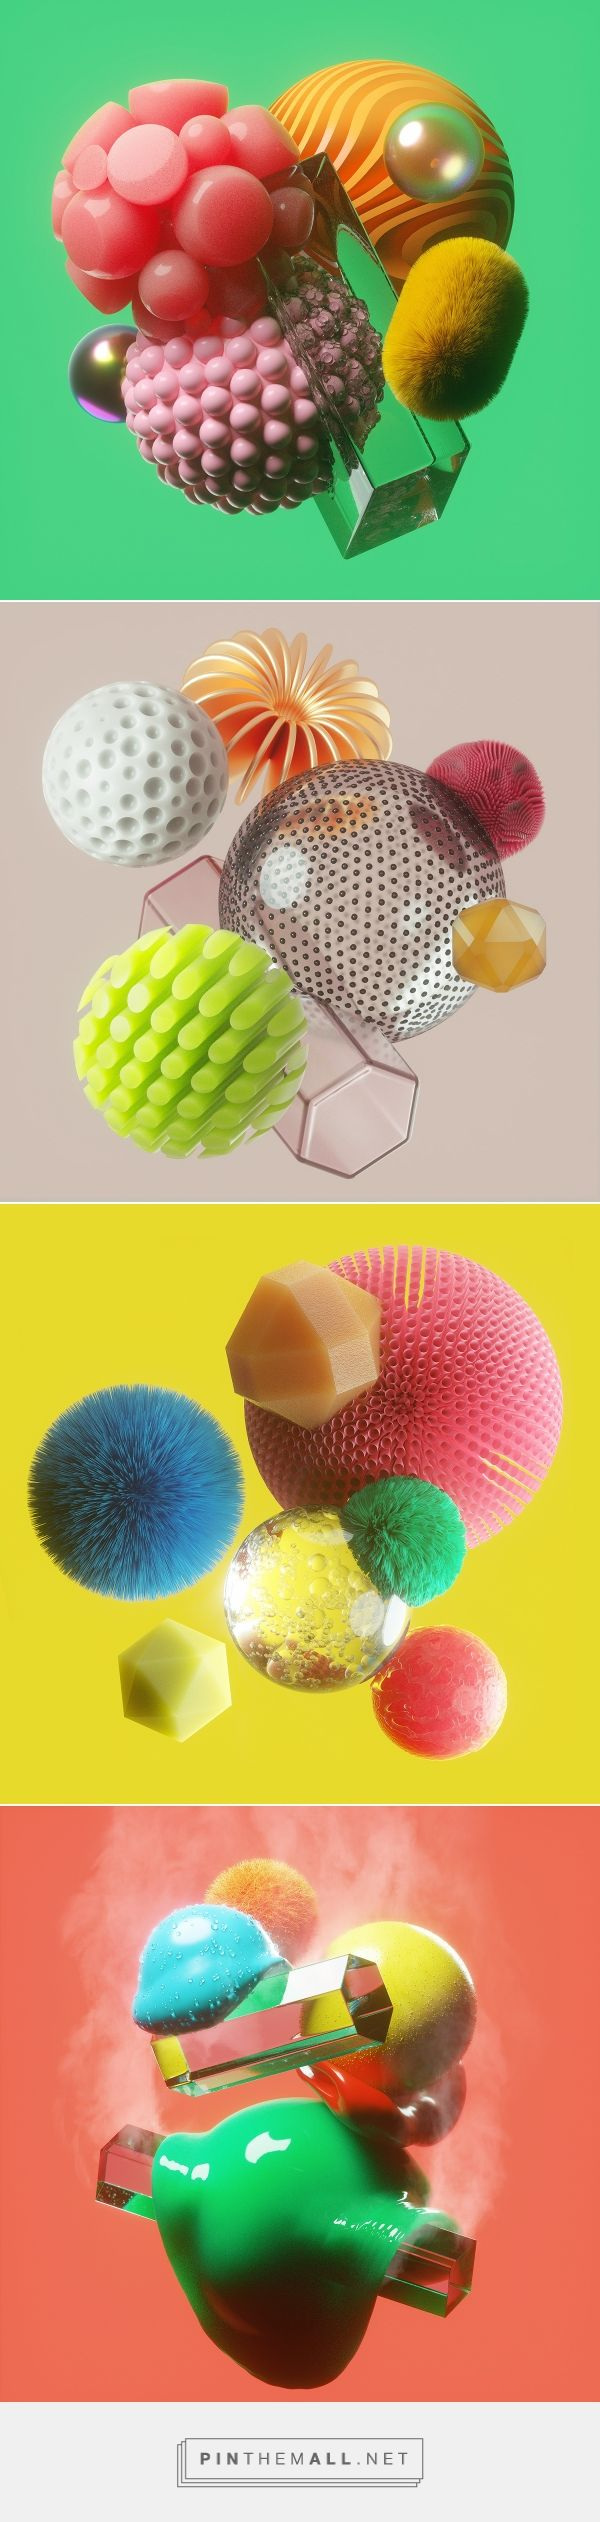 Material Objects on Behance... - a grouped images picture - Pin Them All